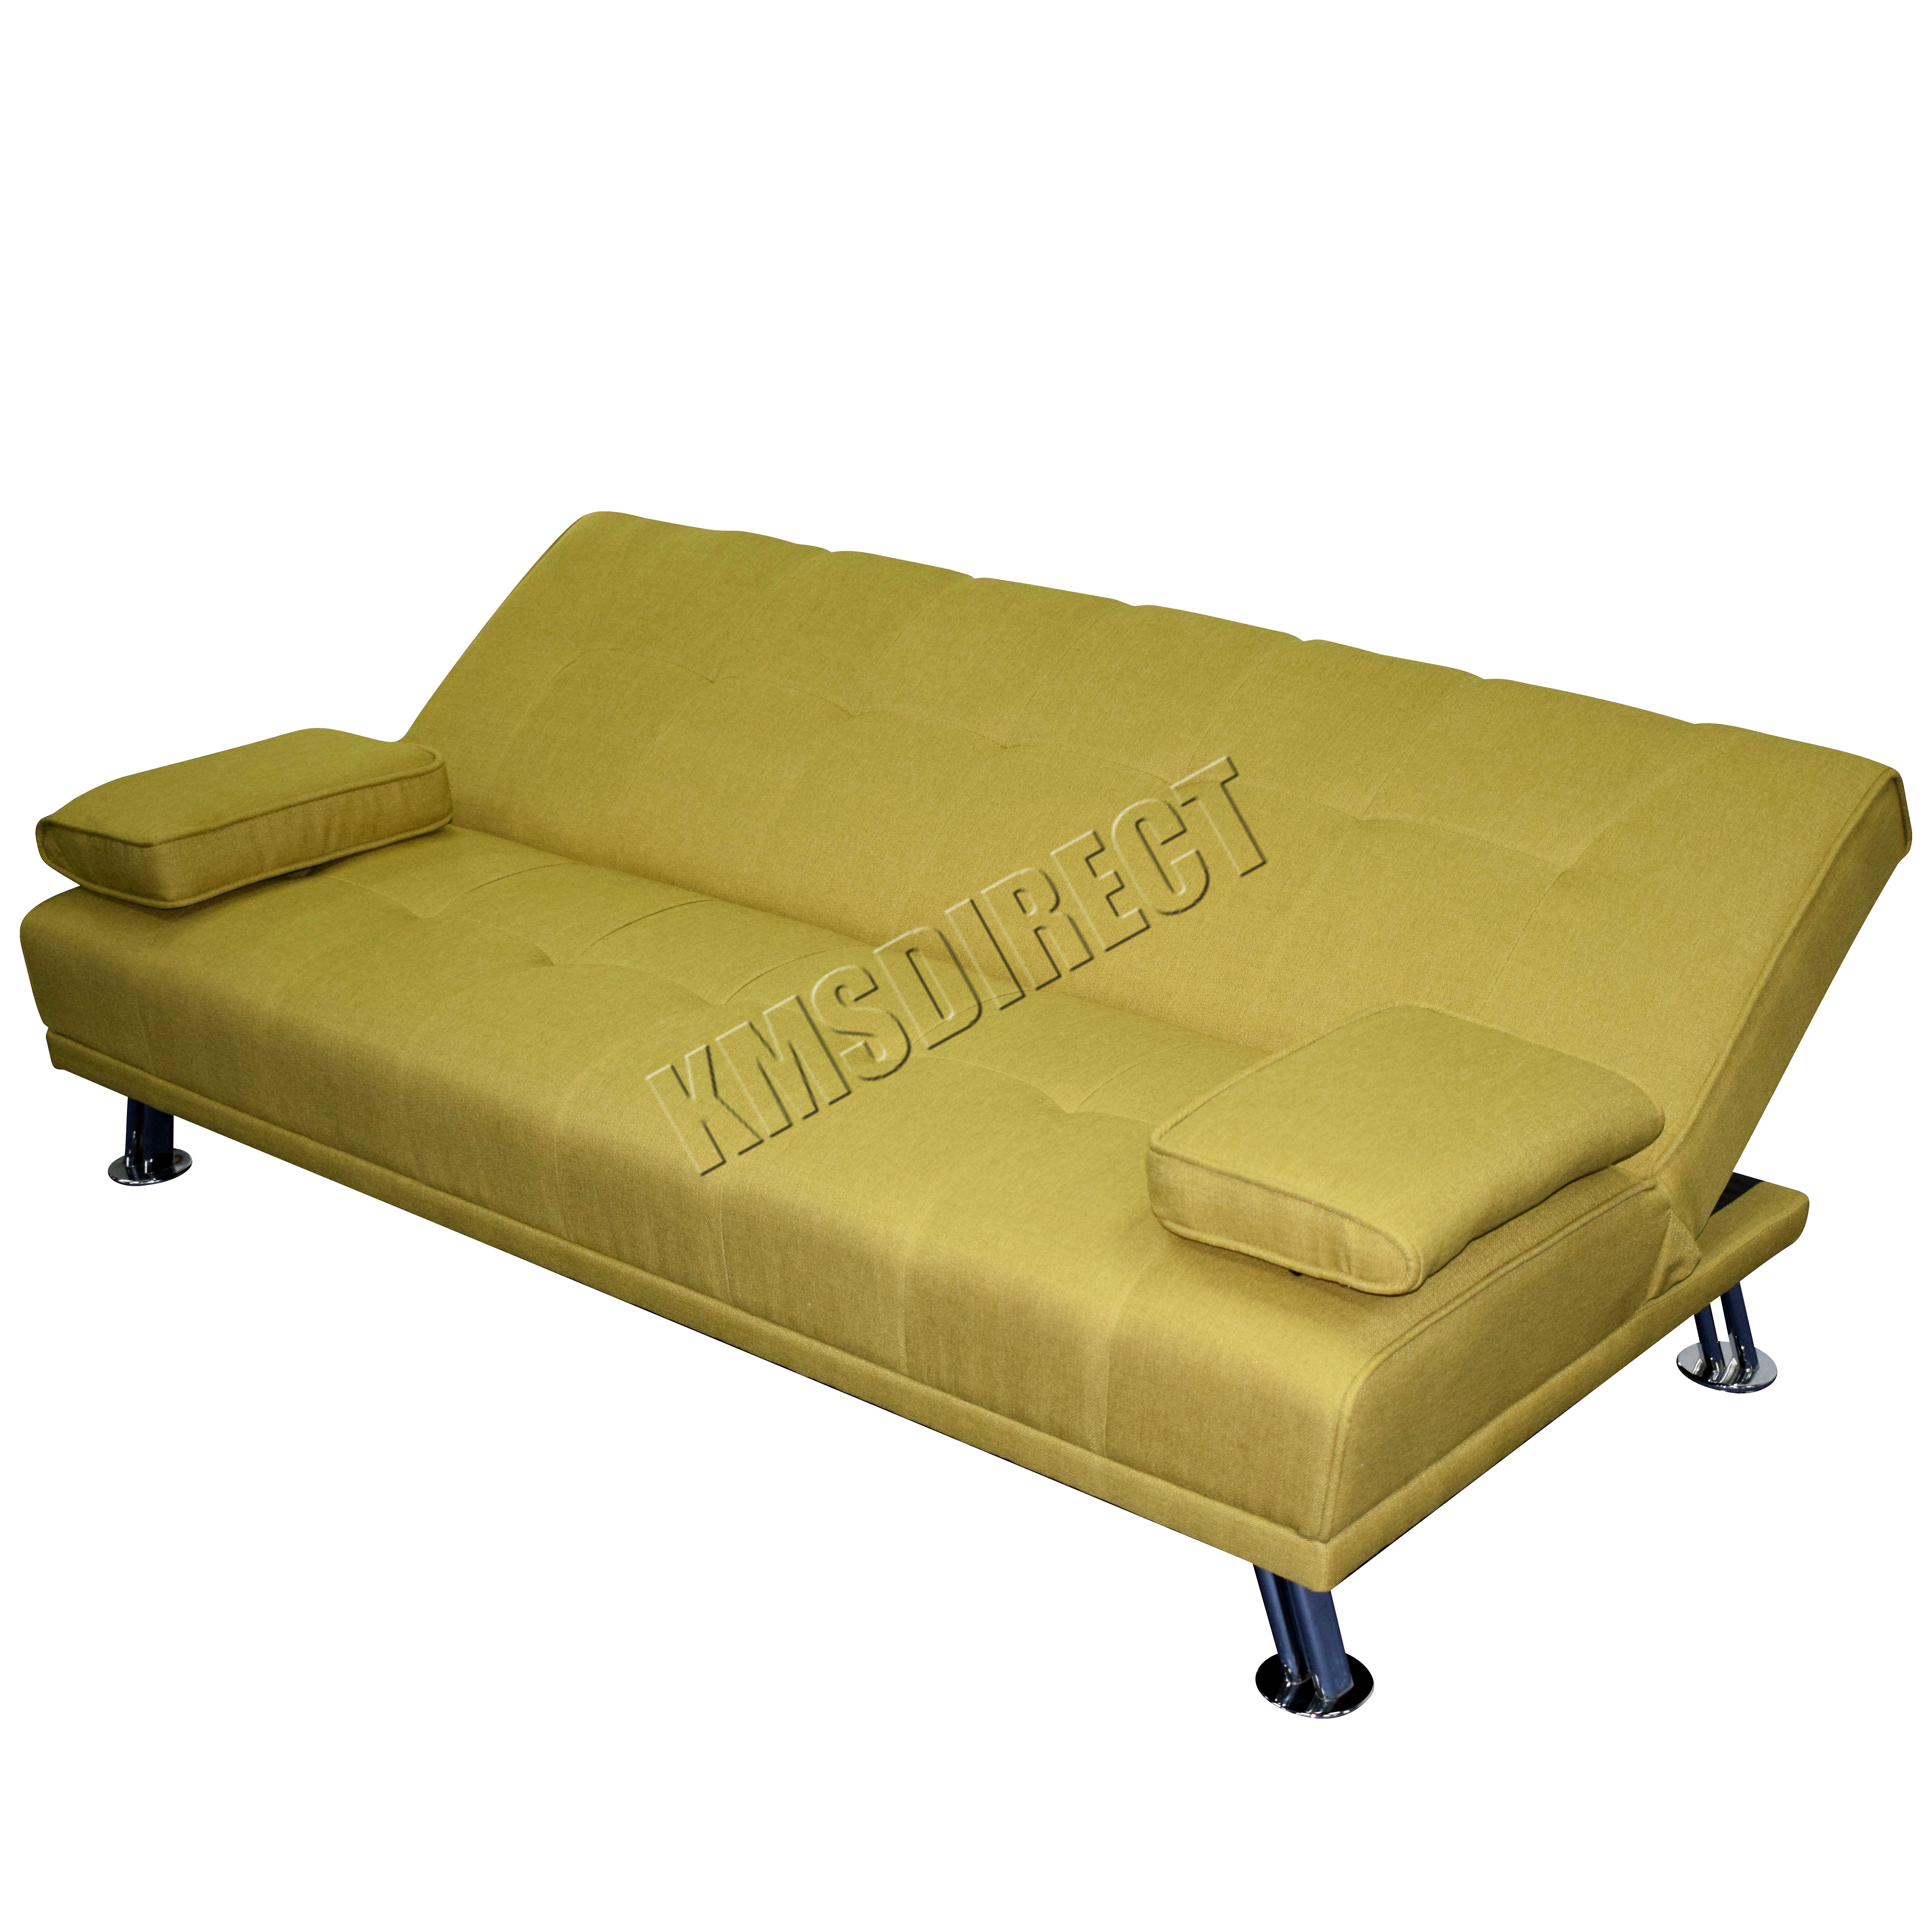 Westwood tissu gros sofa lit fauteuil inclinable 3 places for Canape lit design luxe